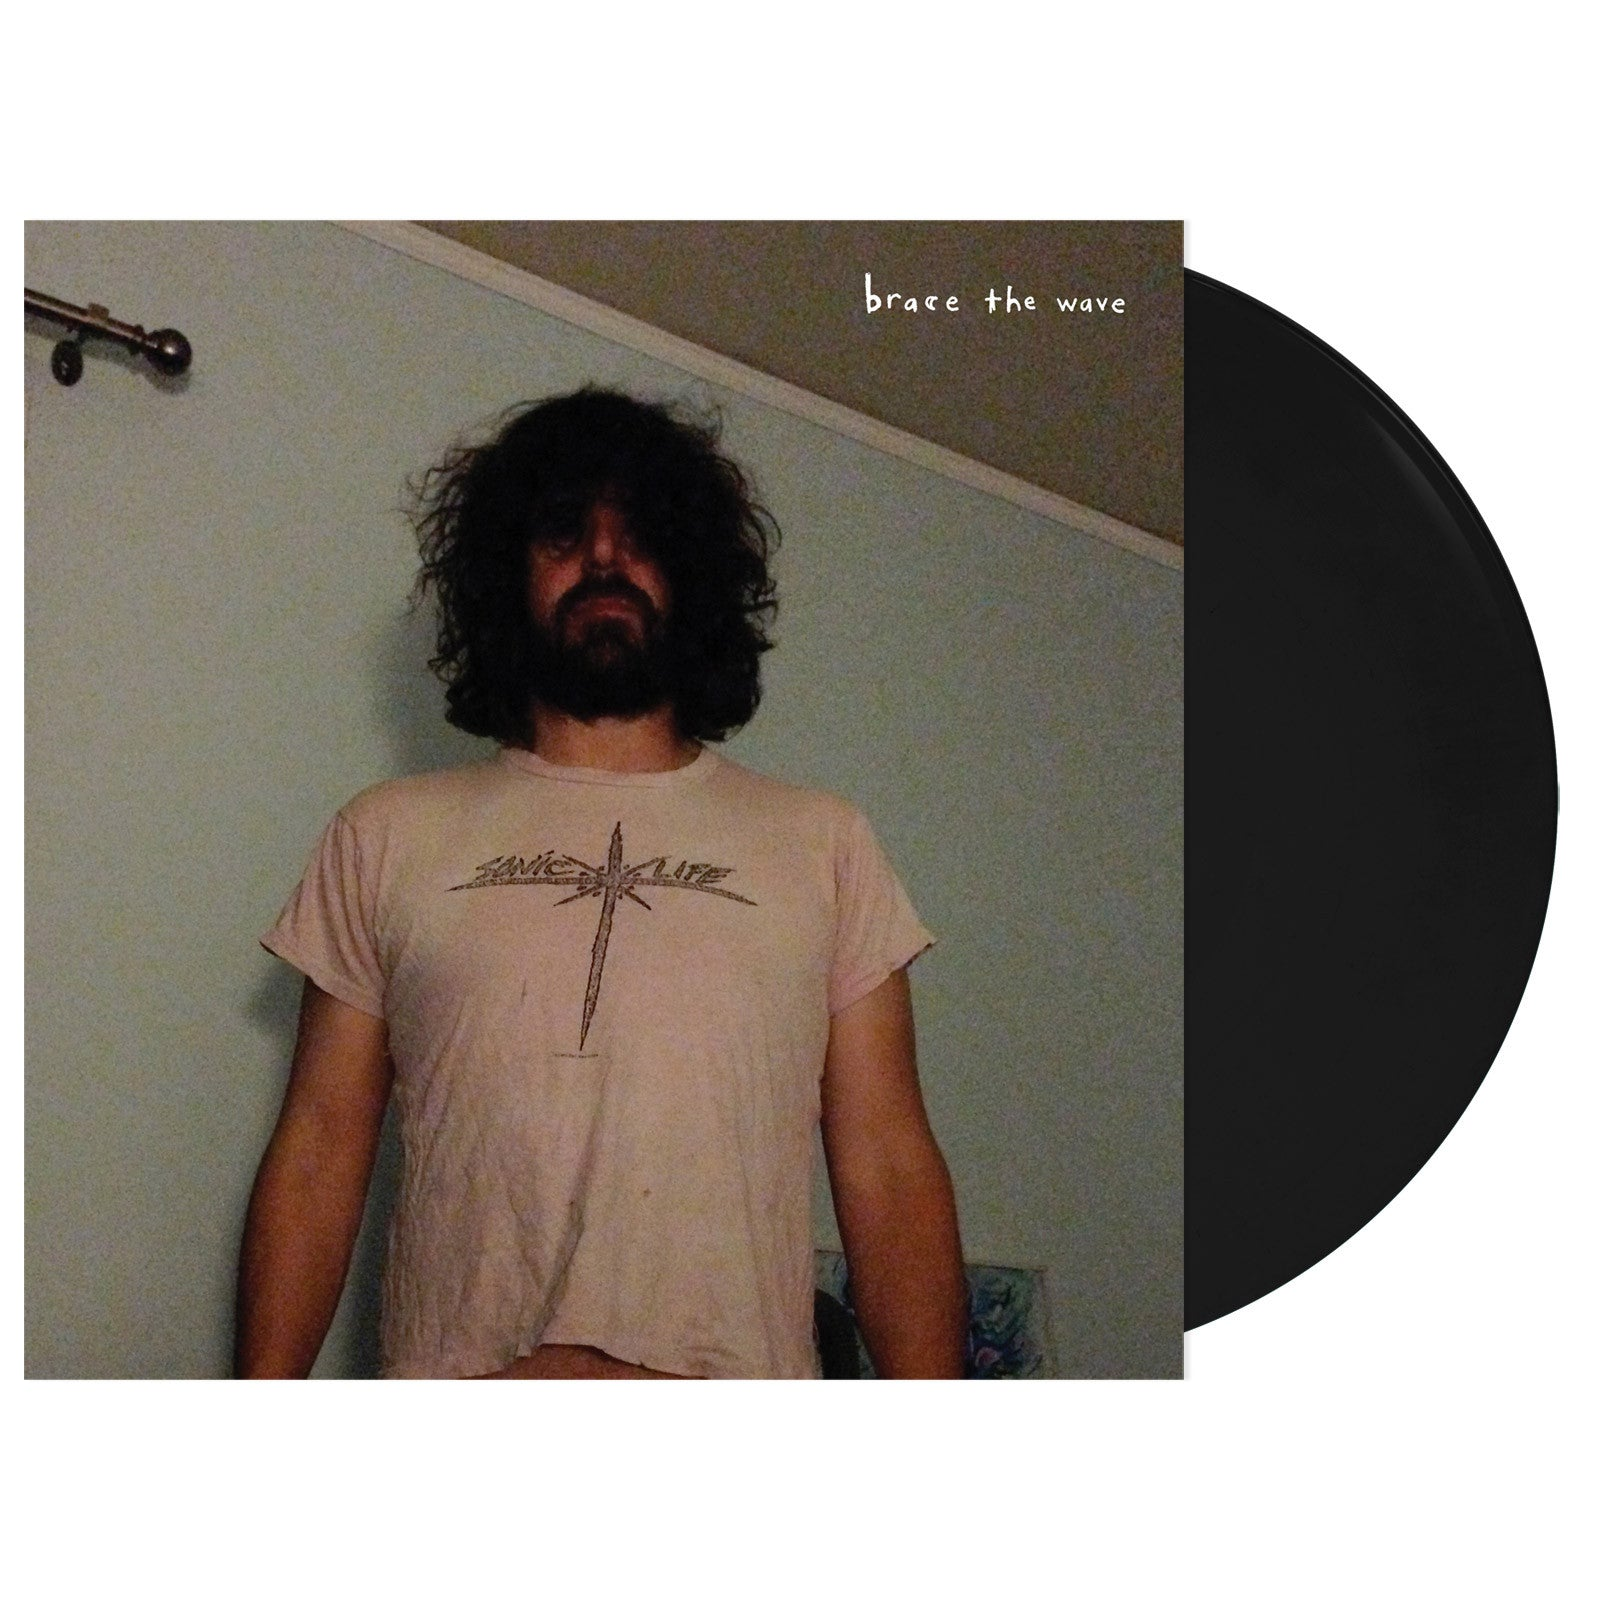 Brace The Wave - Lou Barlow - Joyful Noise Recordings - 3